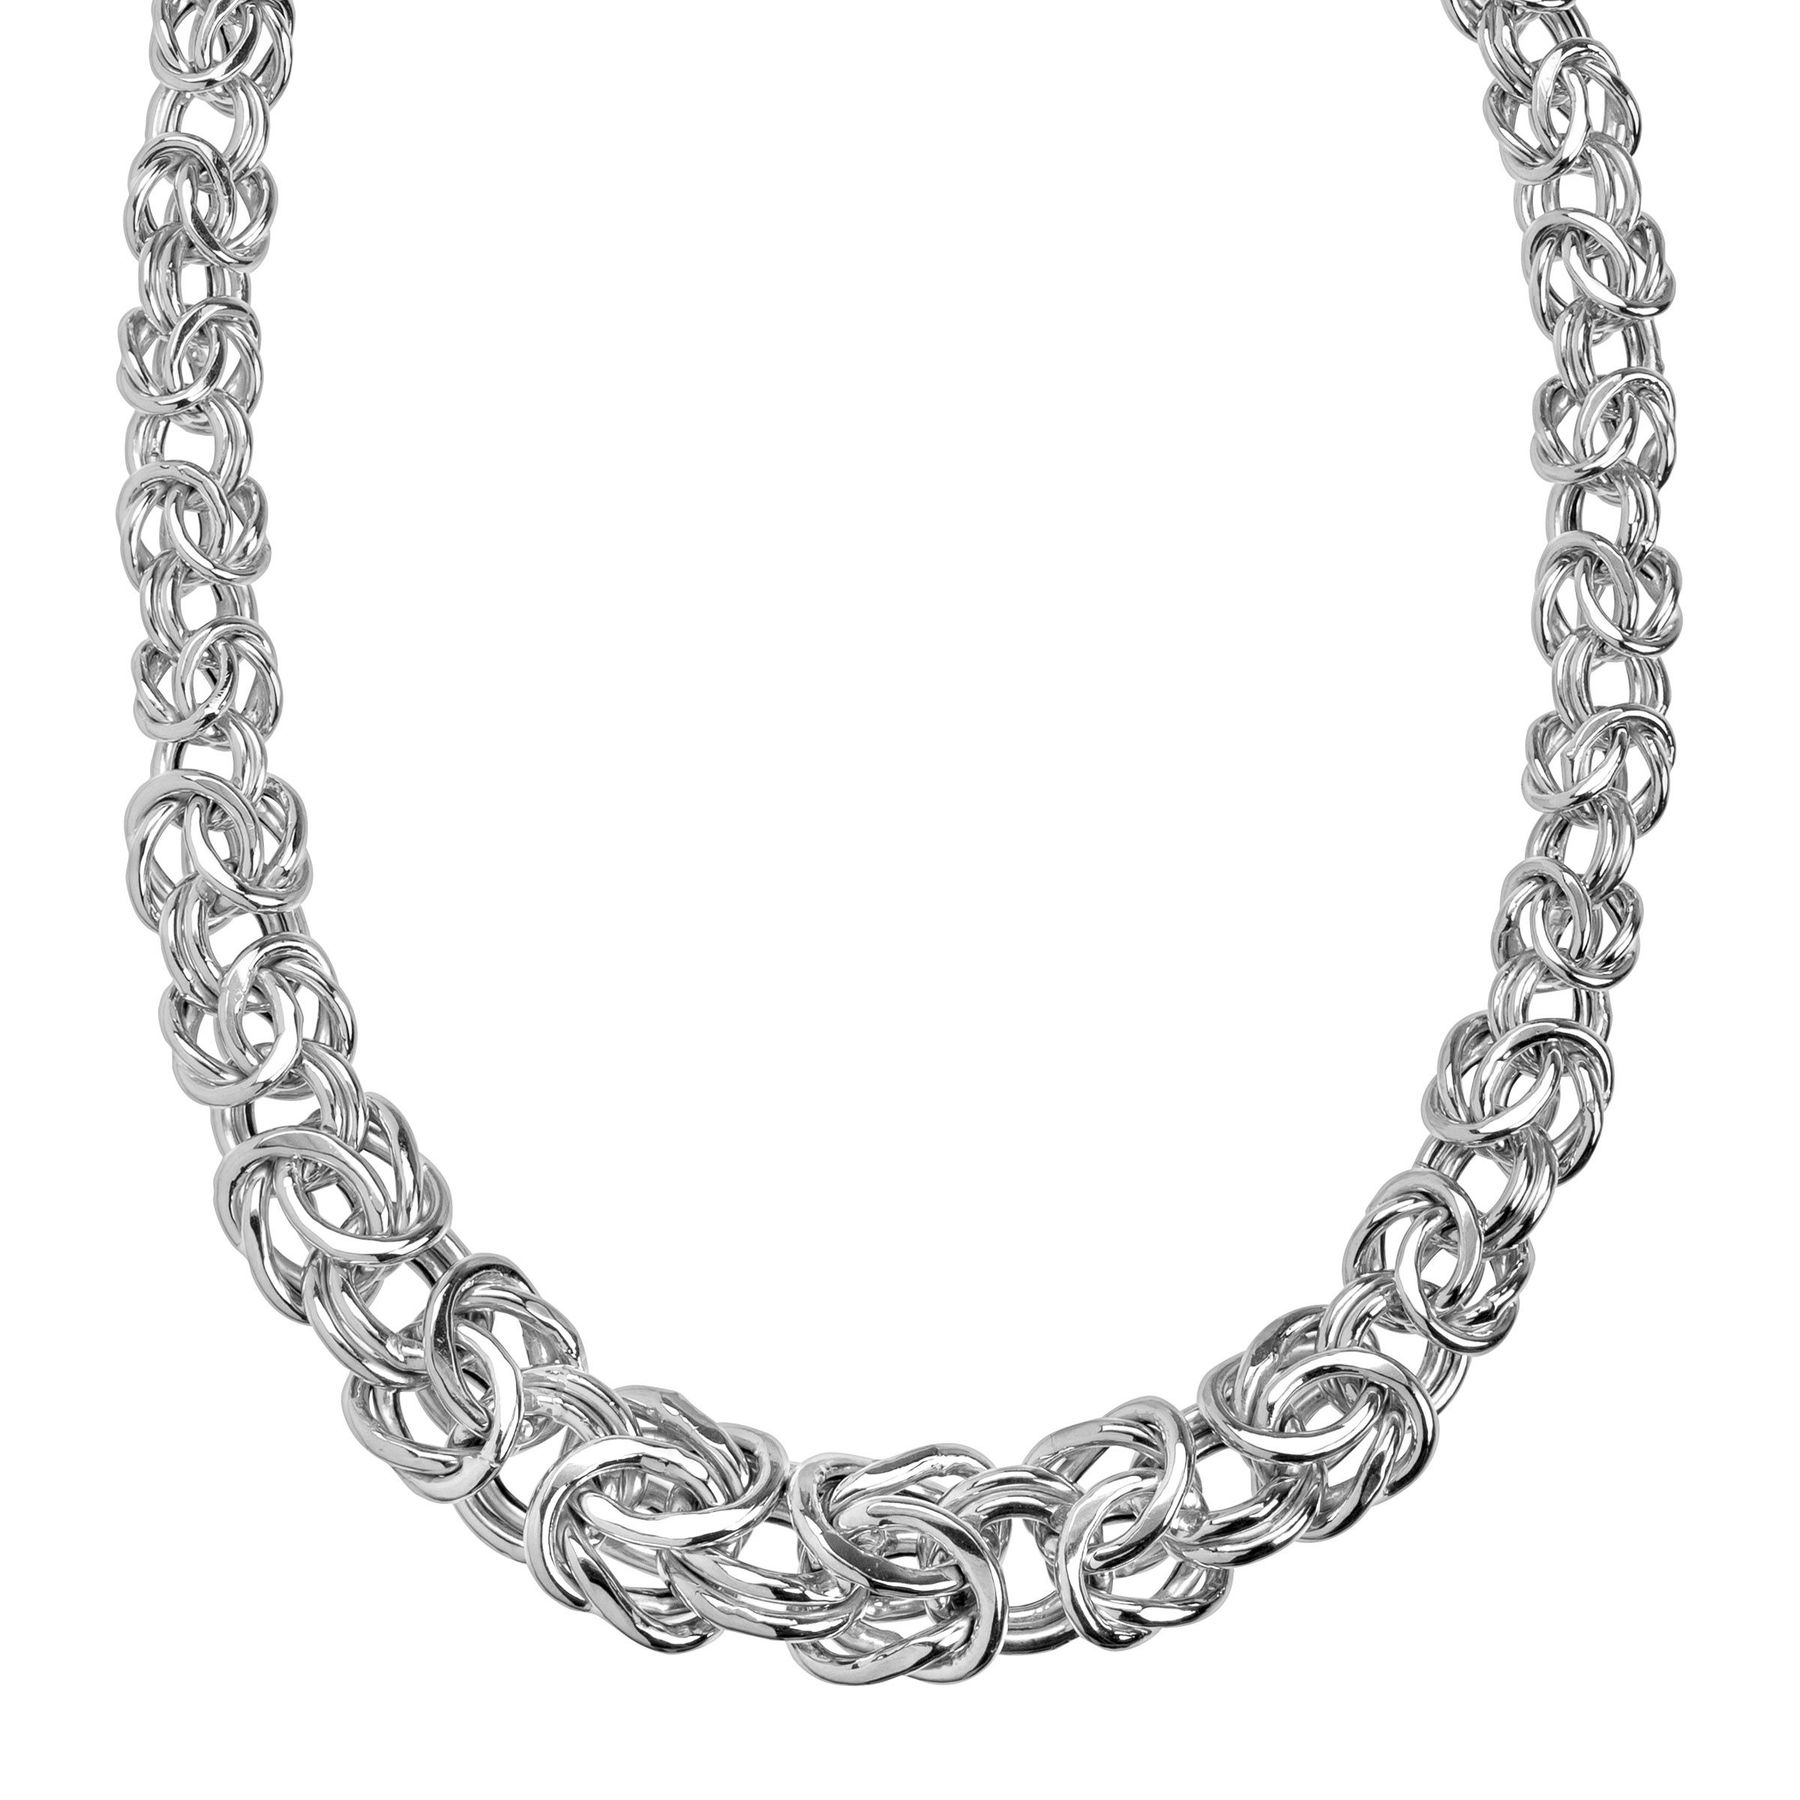 silver antiqued chain nickel finish round necklace necklaces byzantine free sterling products bracelets